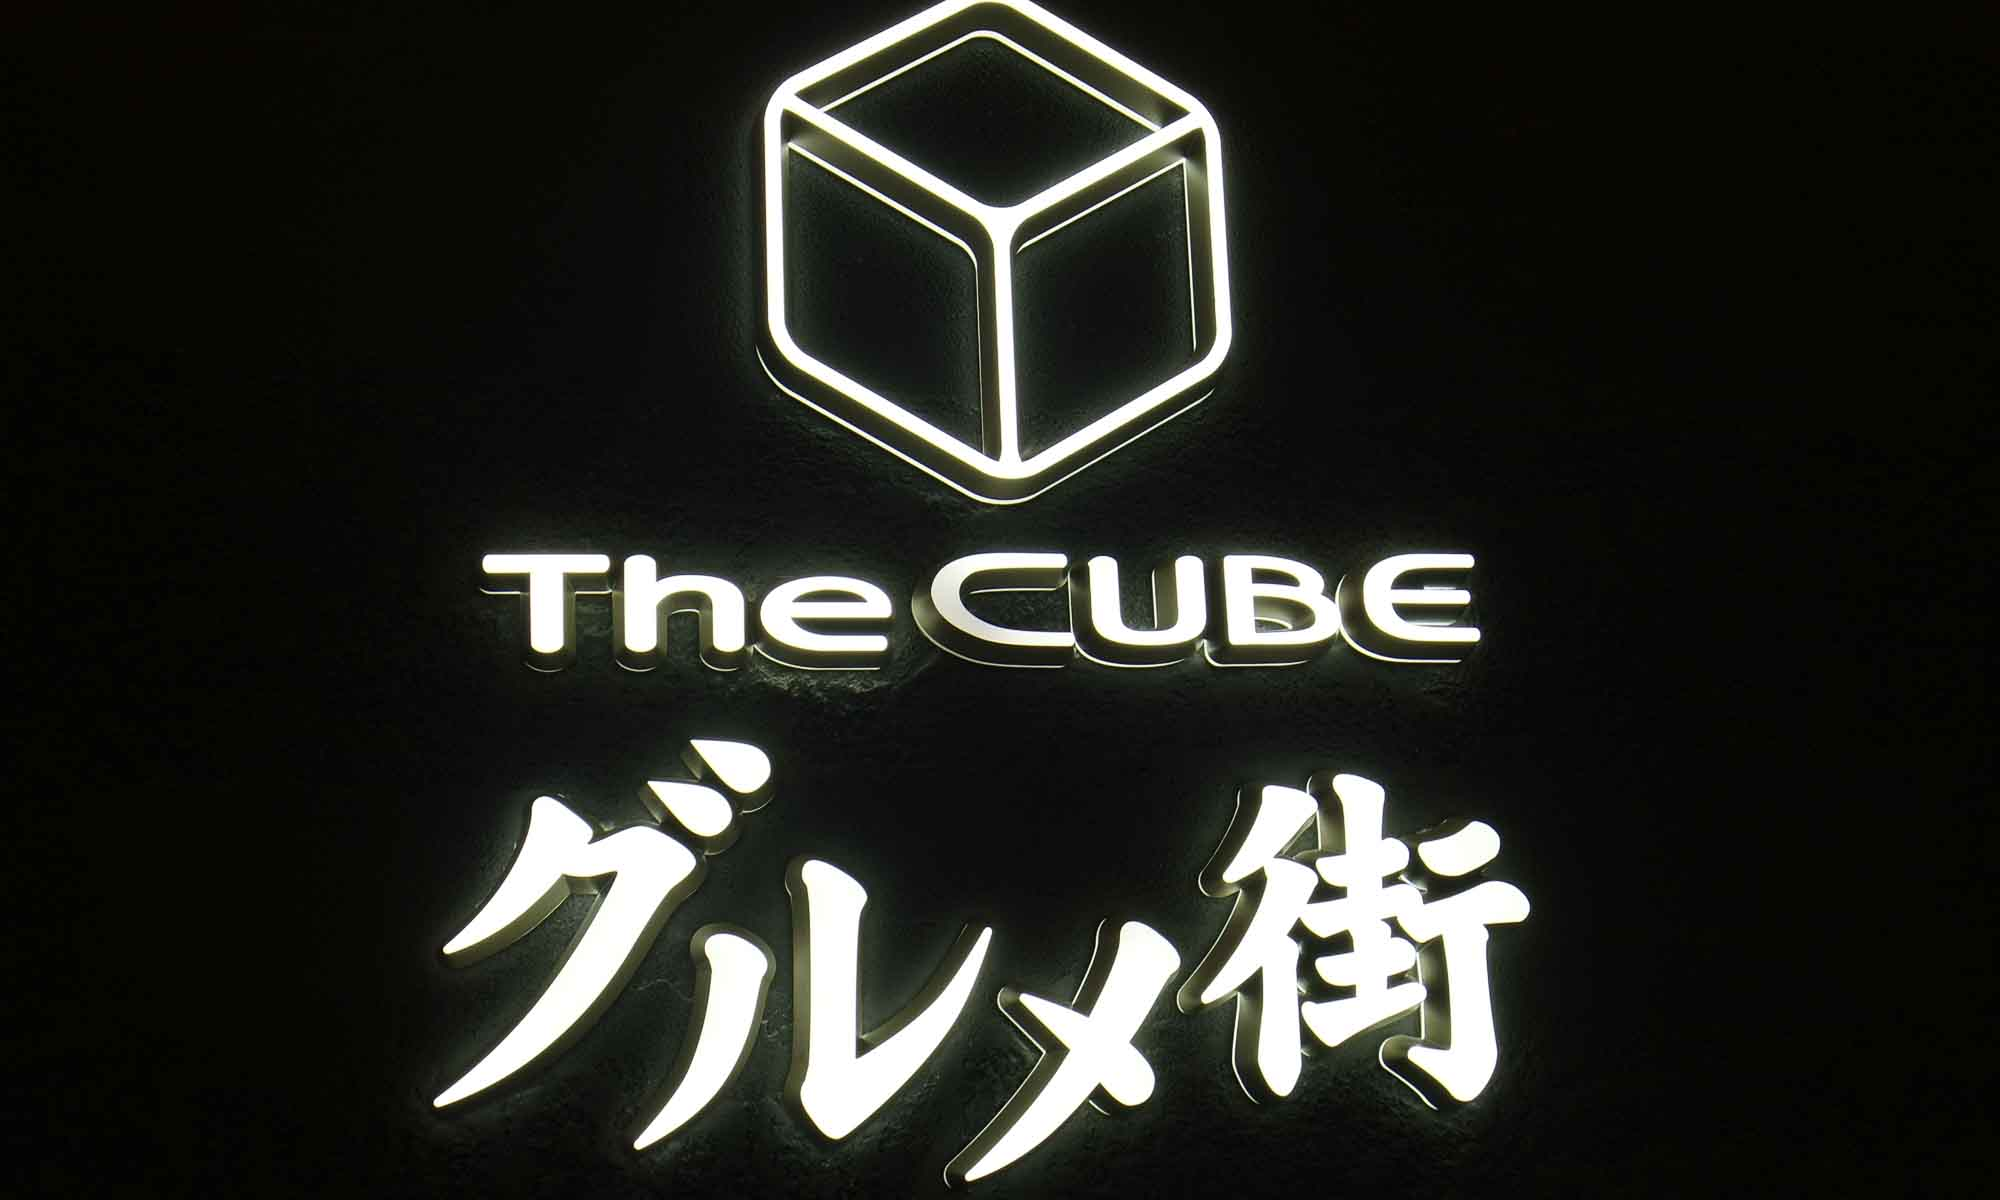 The Cube sign